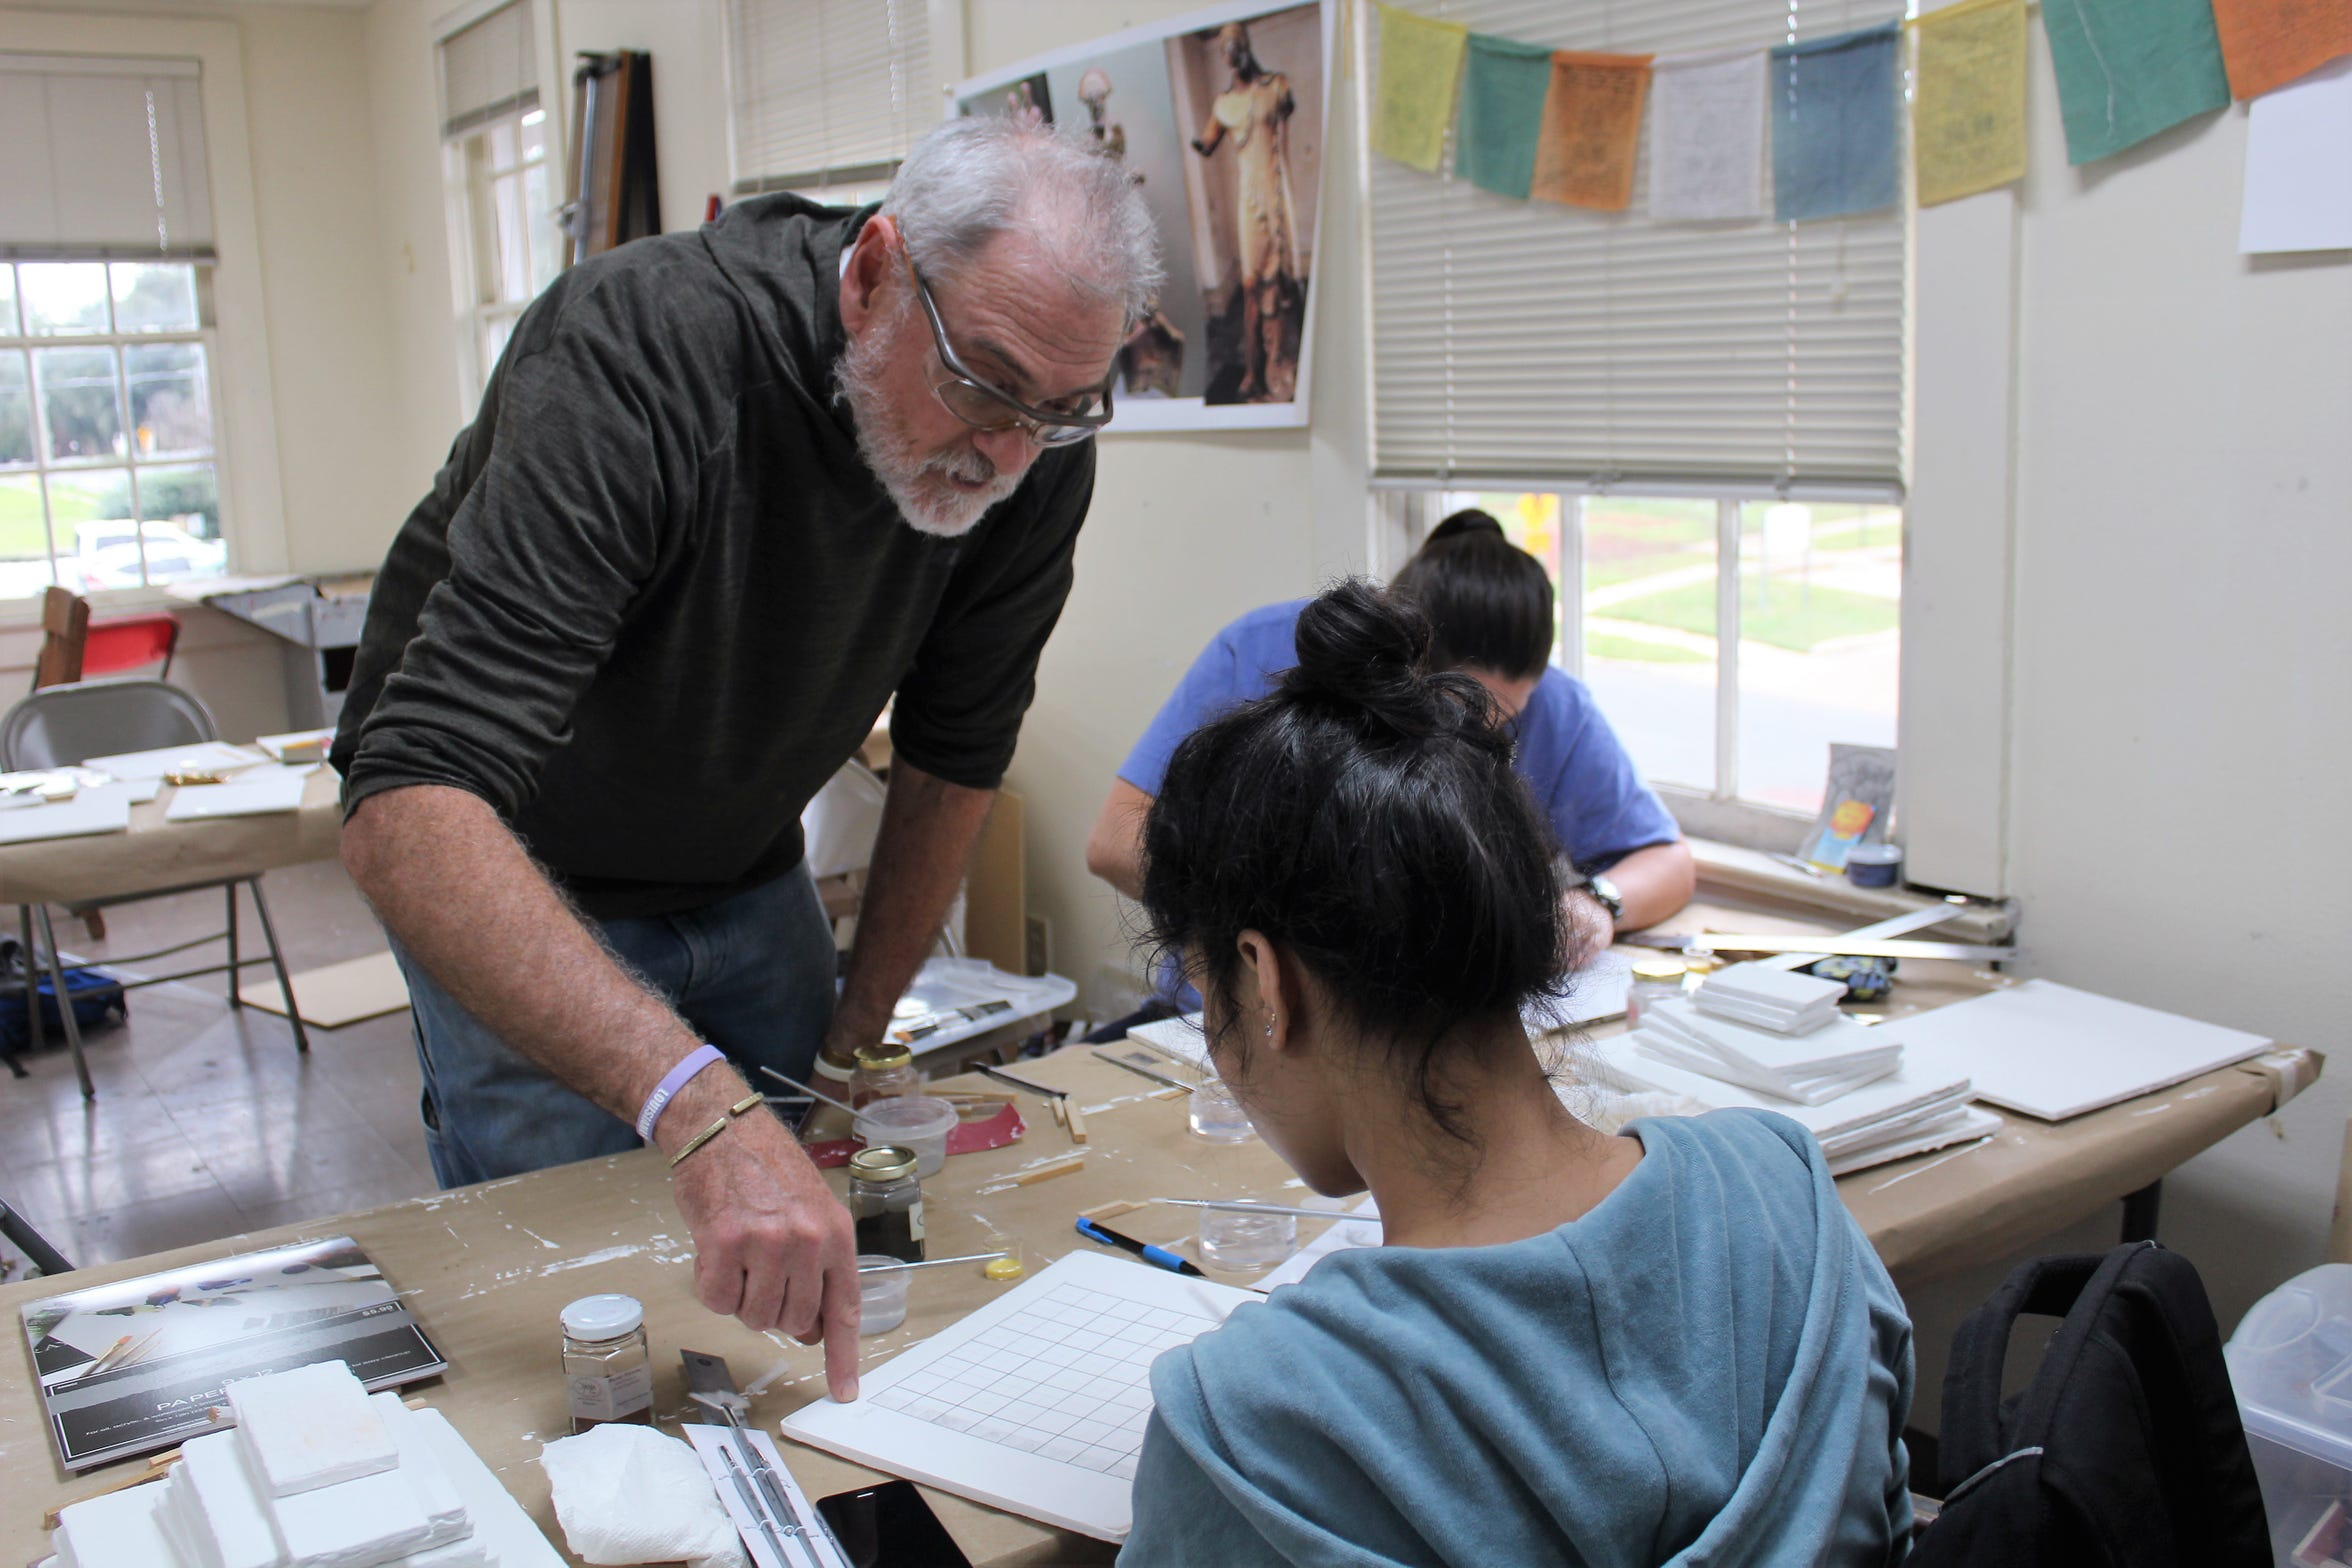 Artist Bruce Allen teaches students at Centenary College.